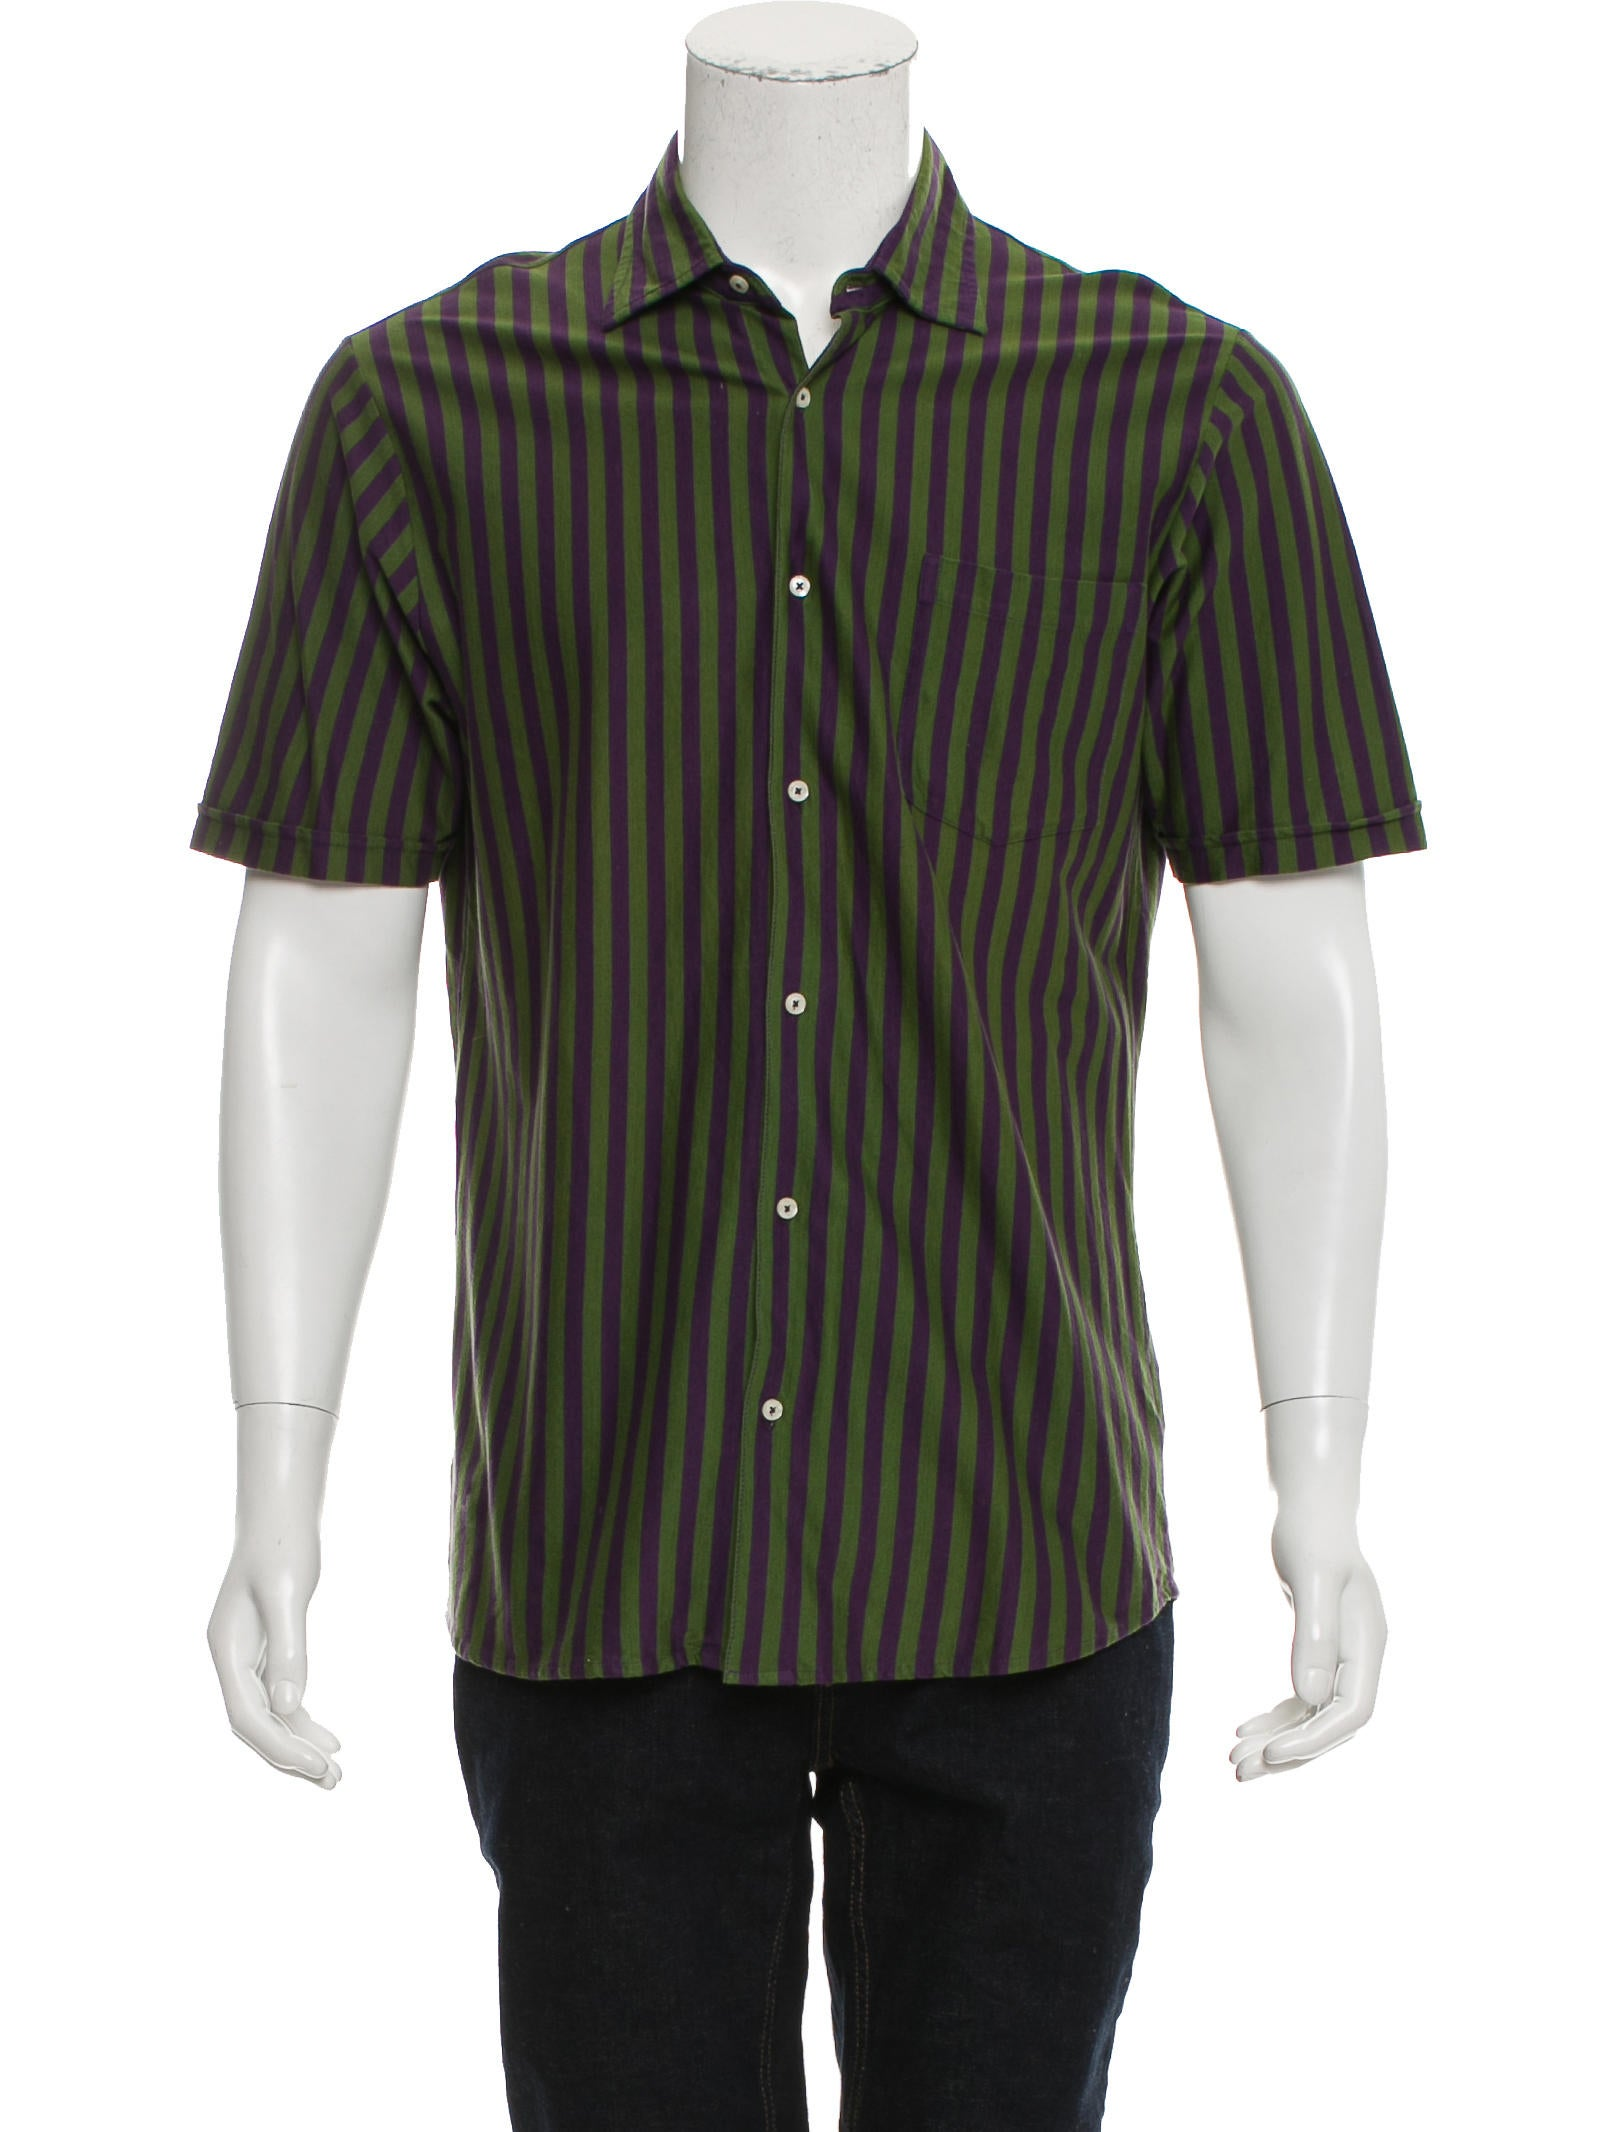 Etro striped button up shirt clothing etr49508 the for Striped button up shirt mens